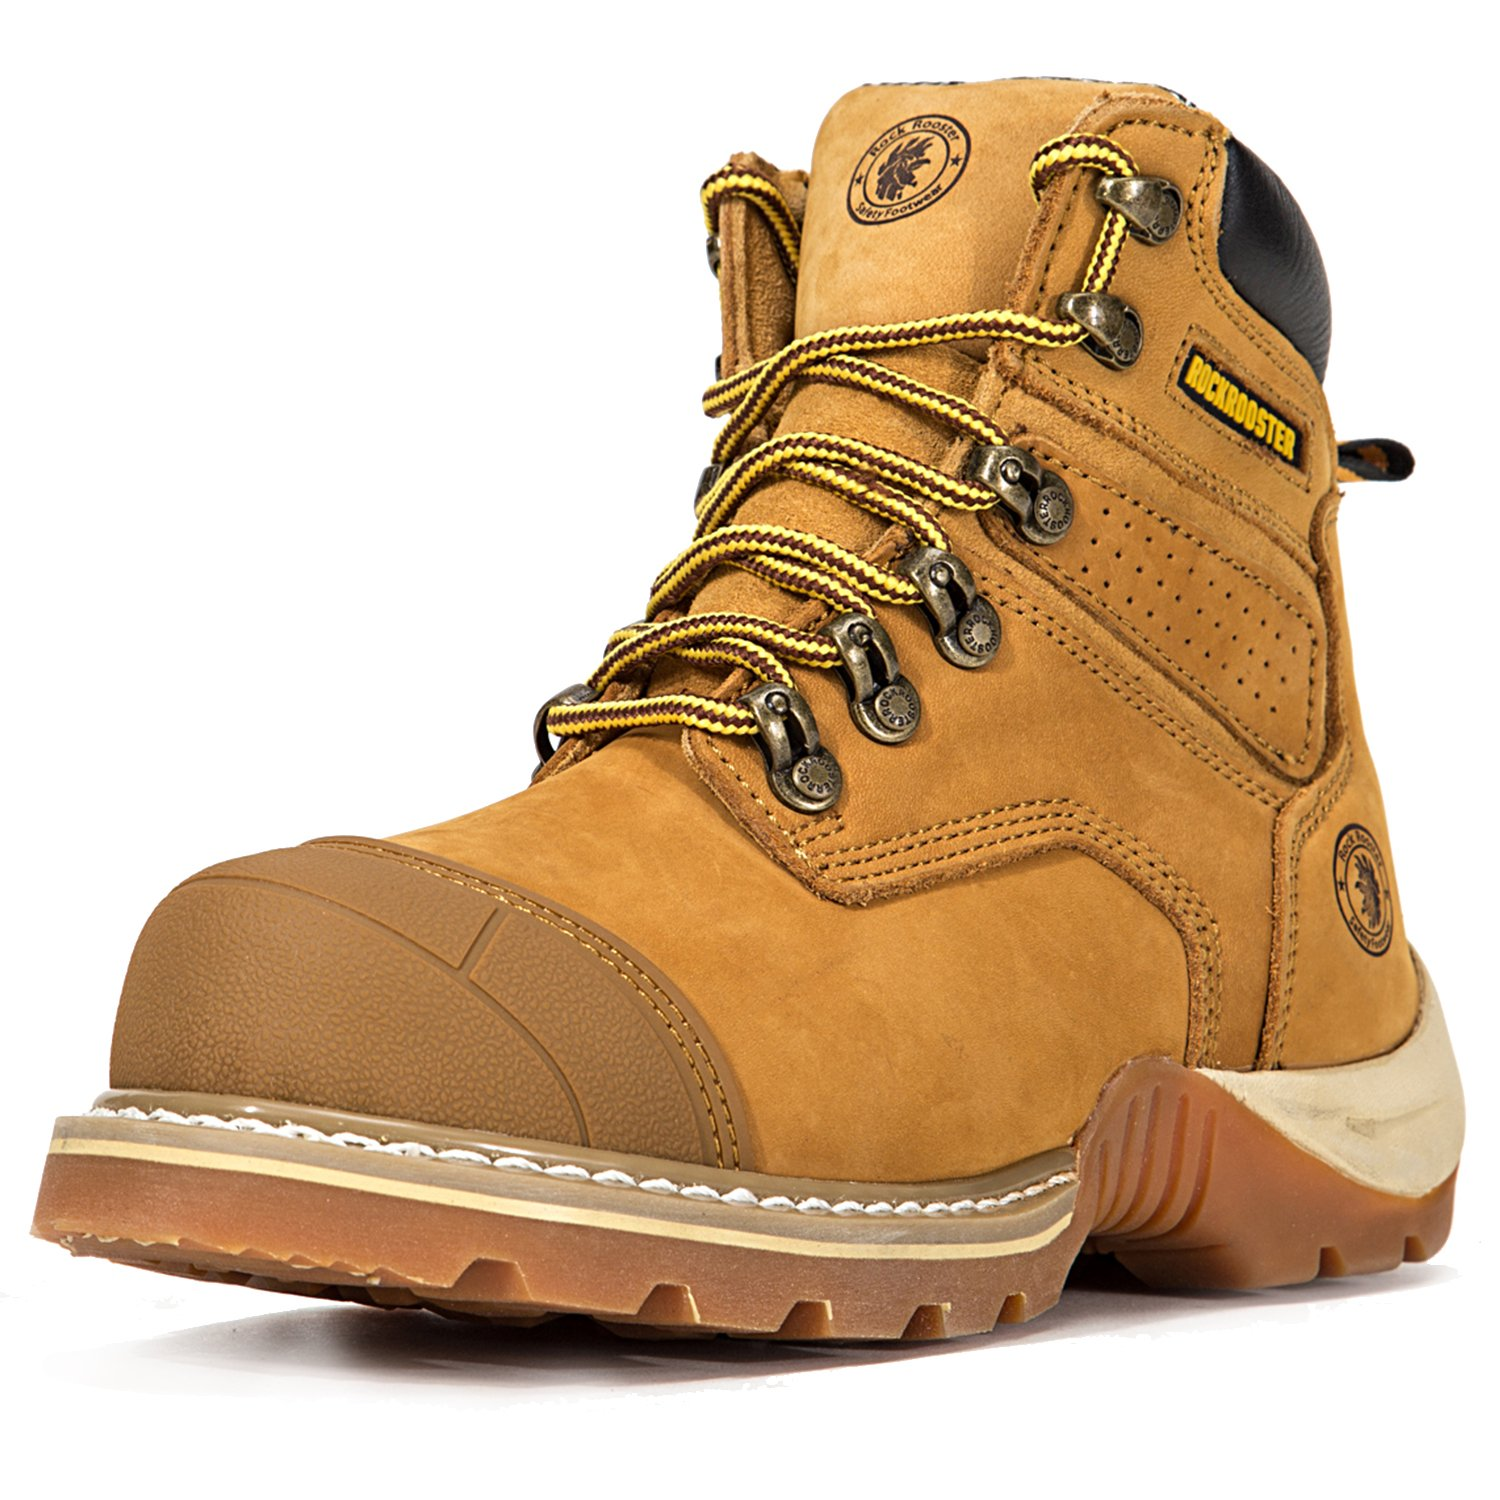 ROCKROOSTER Women's Work Boots, Men's Hiking Boot, Safety Shoes AP268 Brown, US (M8, F9.5)